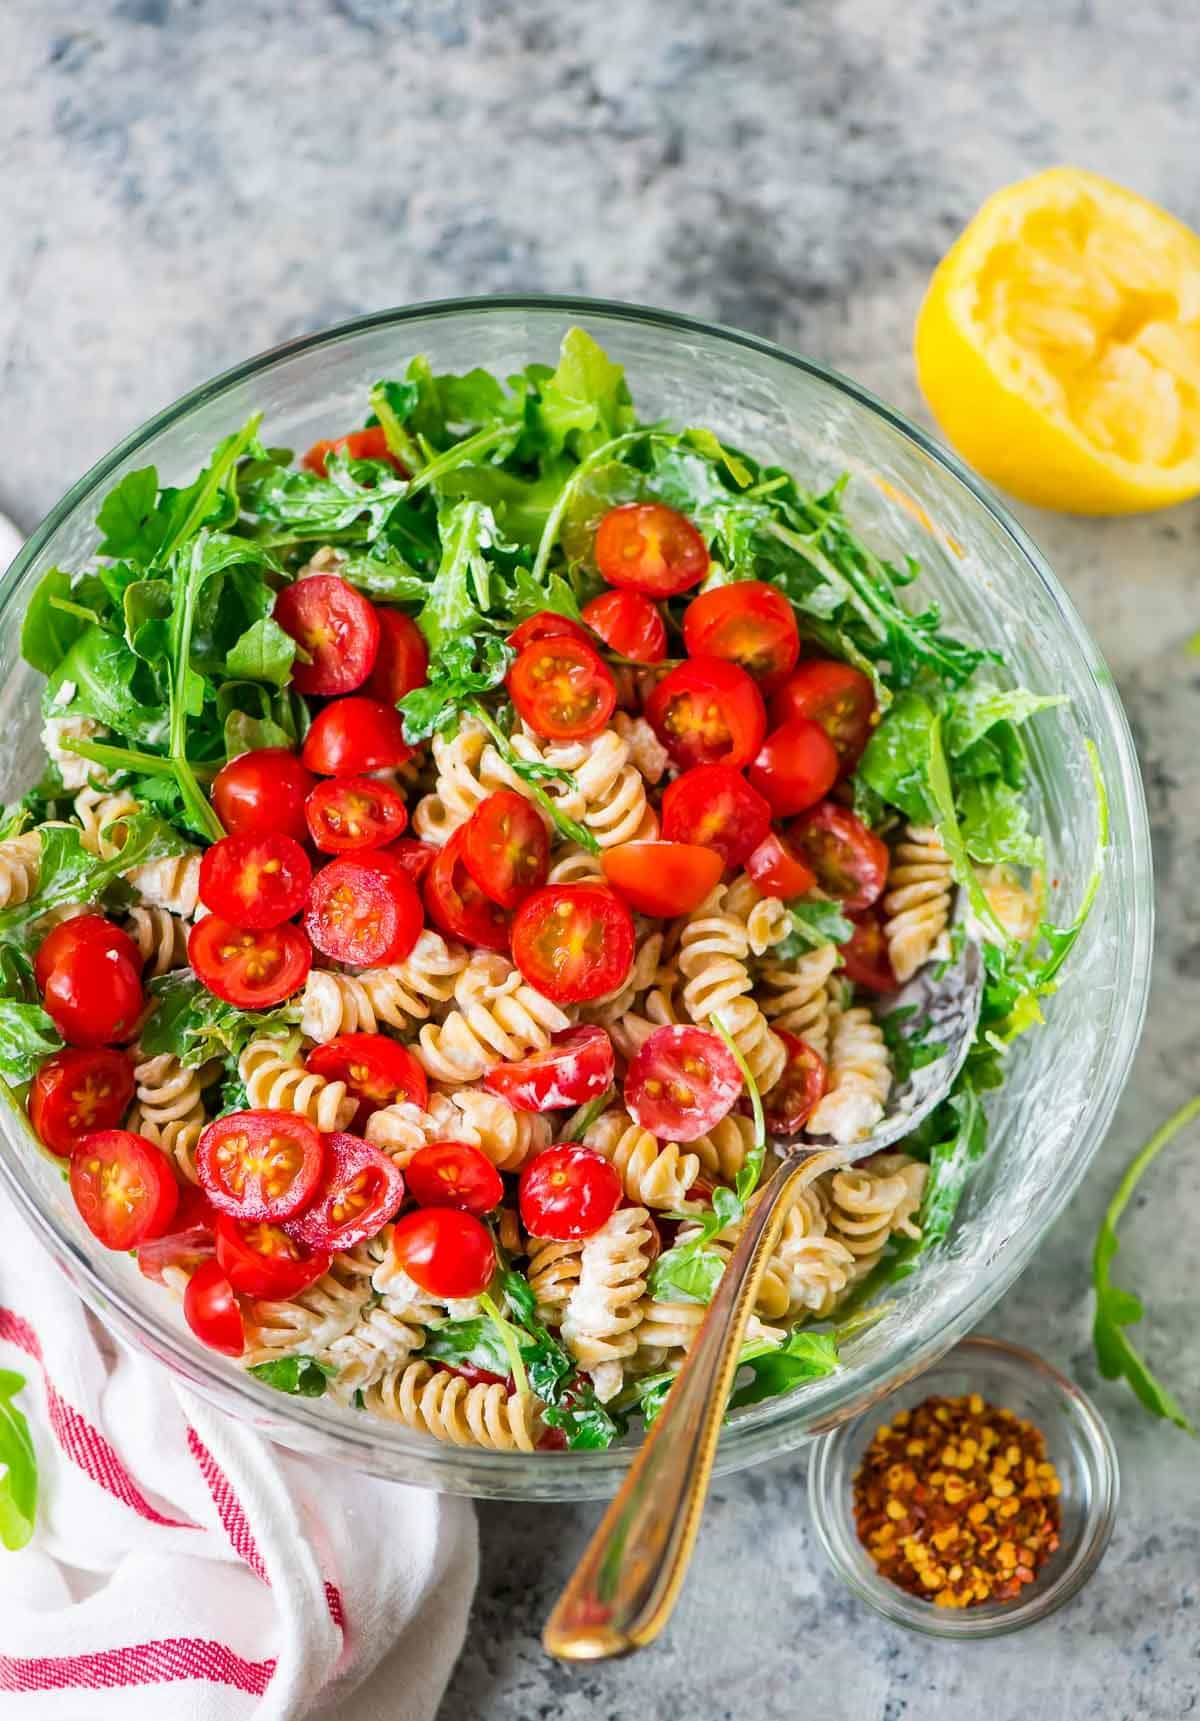 Easy, CREAMY Goat Cheese Pasta Salad with Arugula and Tomato. Ready in 15 minutes! Fast, fresh, and perfect for a picnic side dish, barbecues, and light summer meals. Recipe at wellplated.com   @wellplated